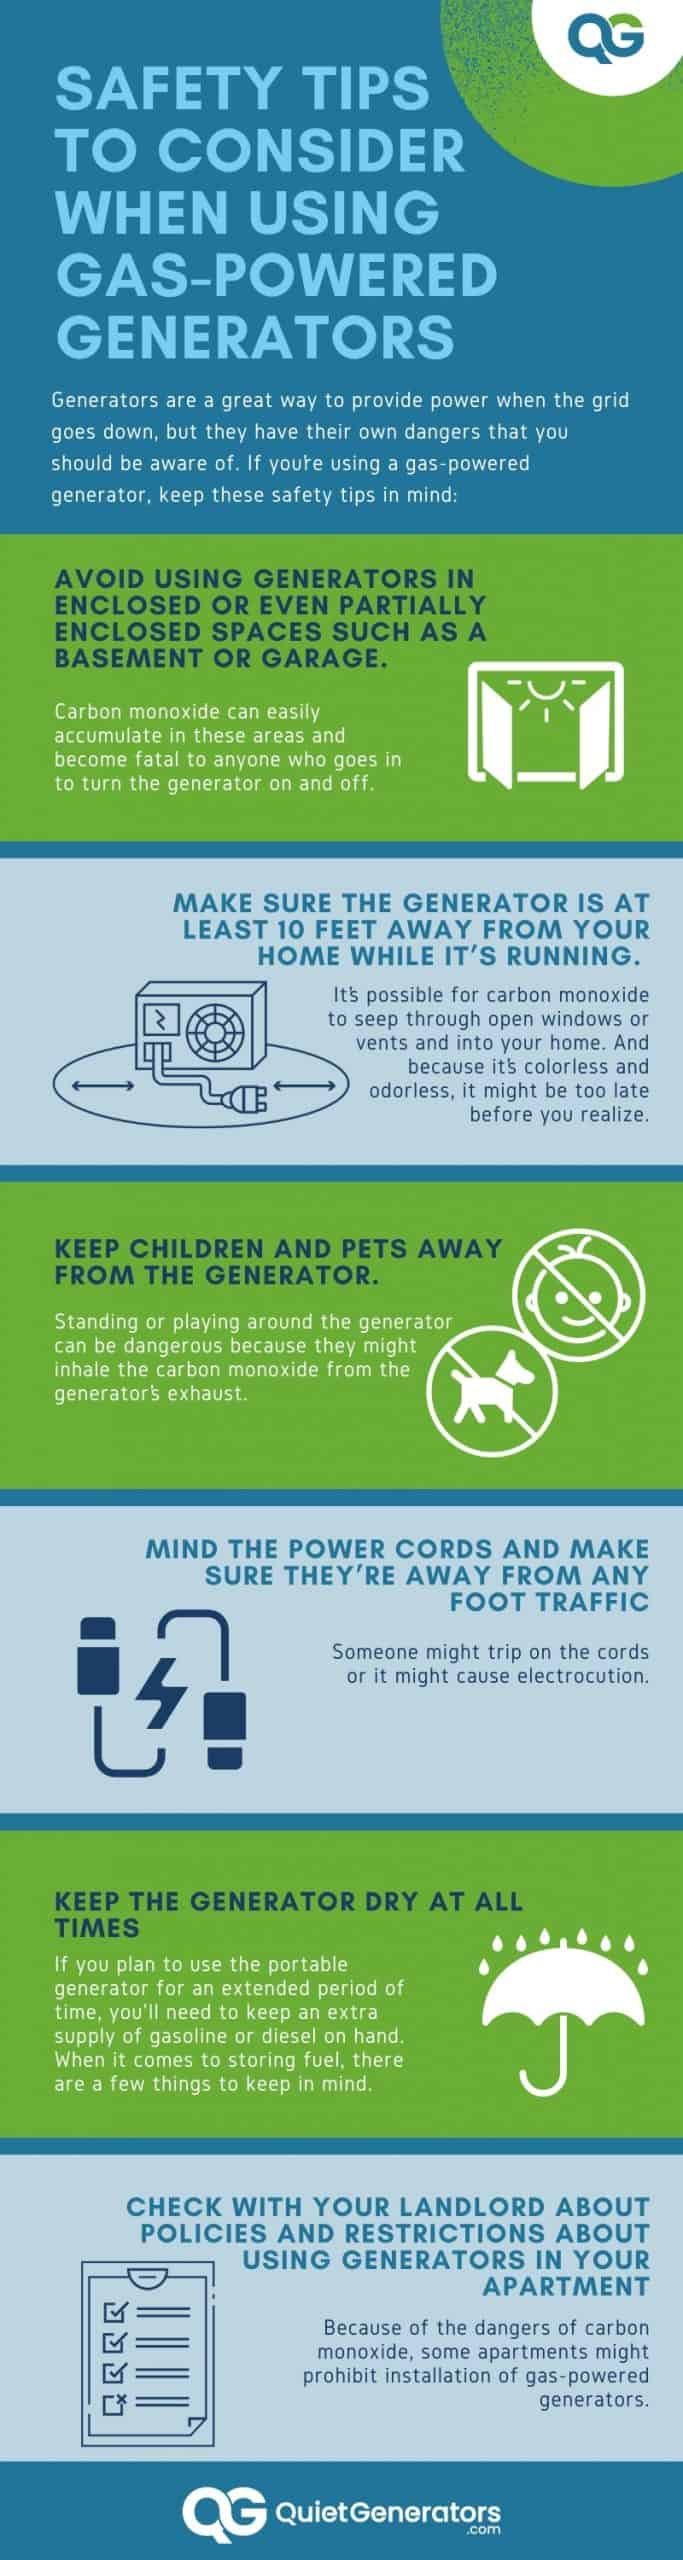 6-point infographic with tips for generator safety